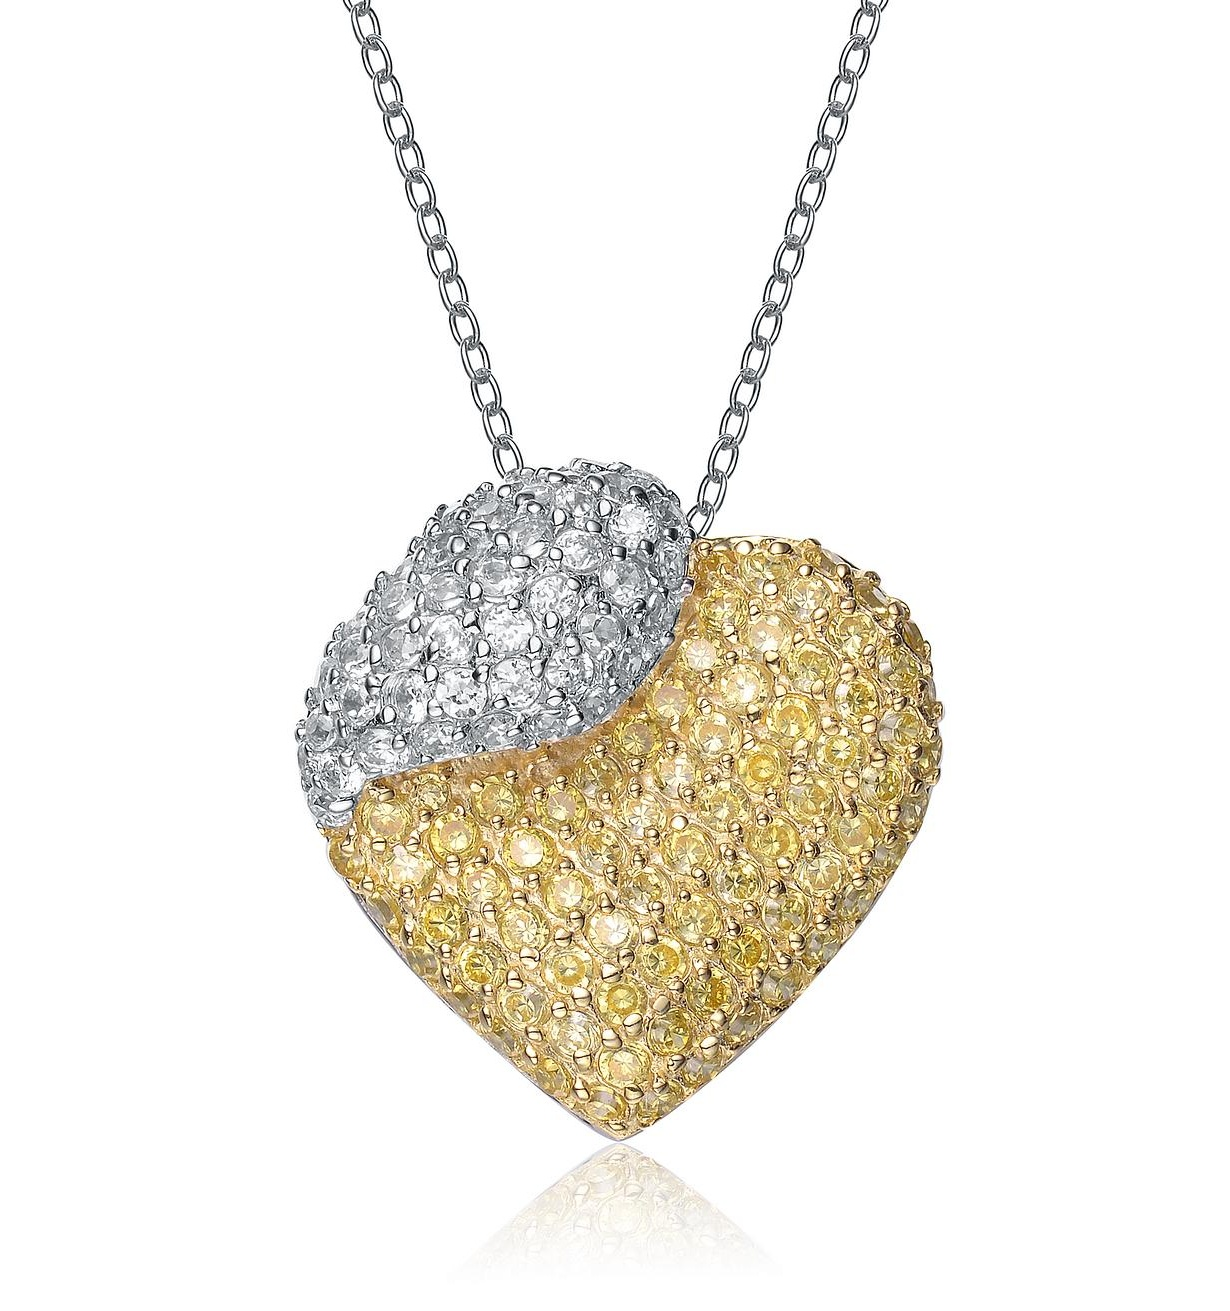 Rozzato Sterling Silver Gold Plated & White Cubic Zirconia Pendant